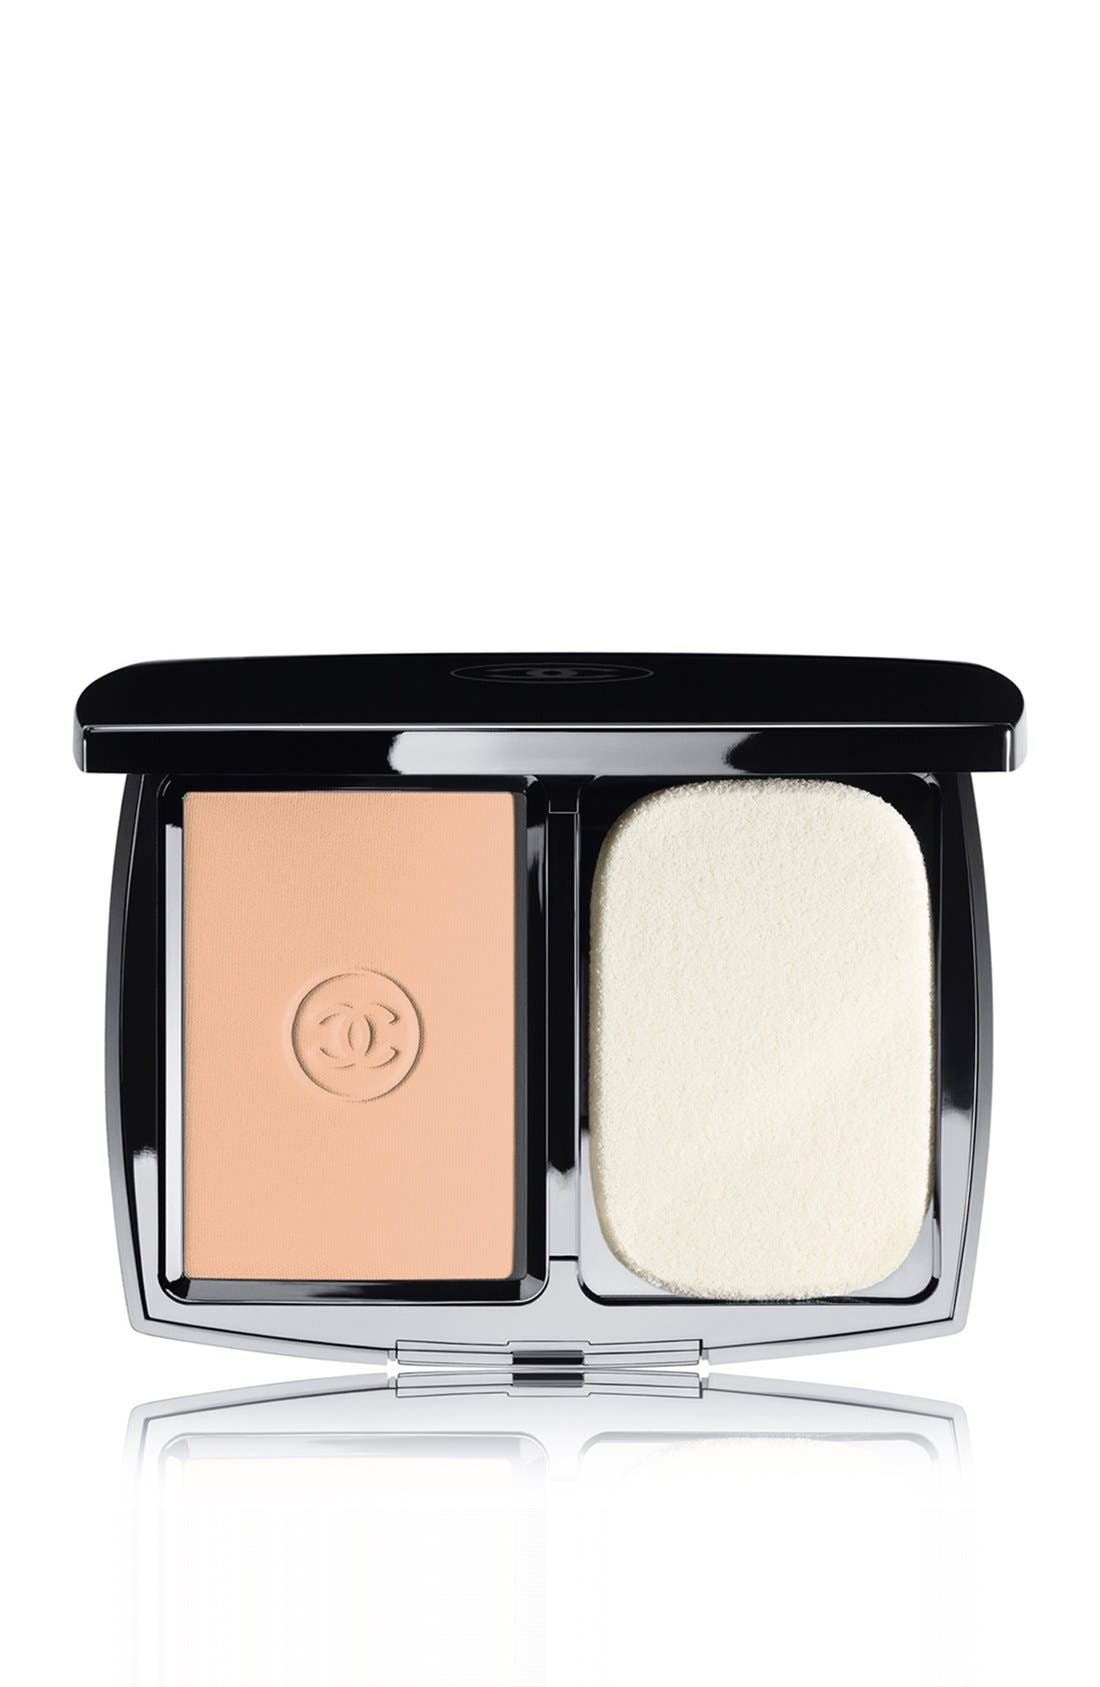 DOUBLE PERFECTION LUMIÈRE<br />Long-Wear Flawless Sunscreen Powder Makeup Broad Spectrum SPF 15,                             Main thumbnail 5, color,